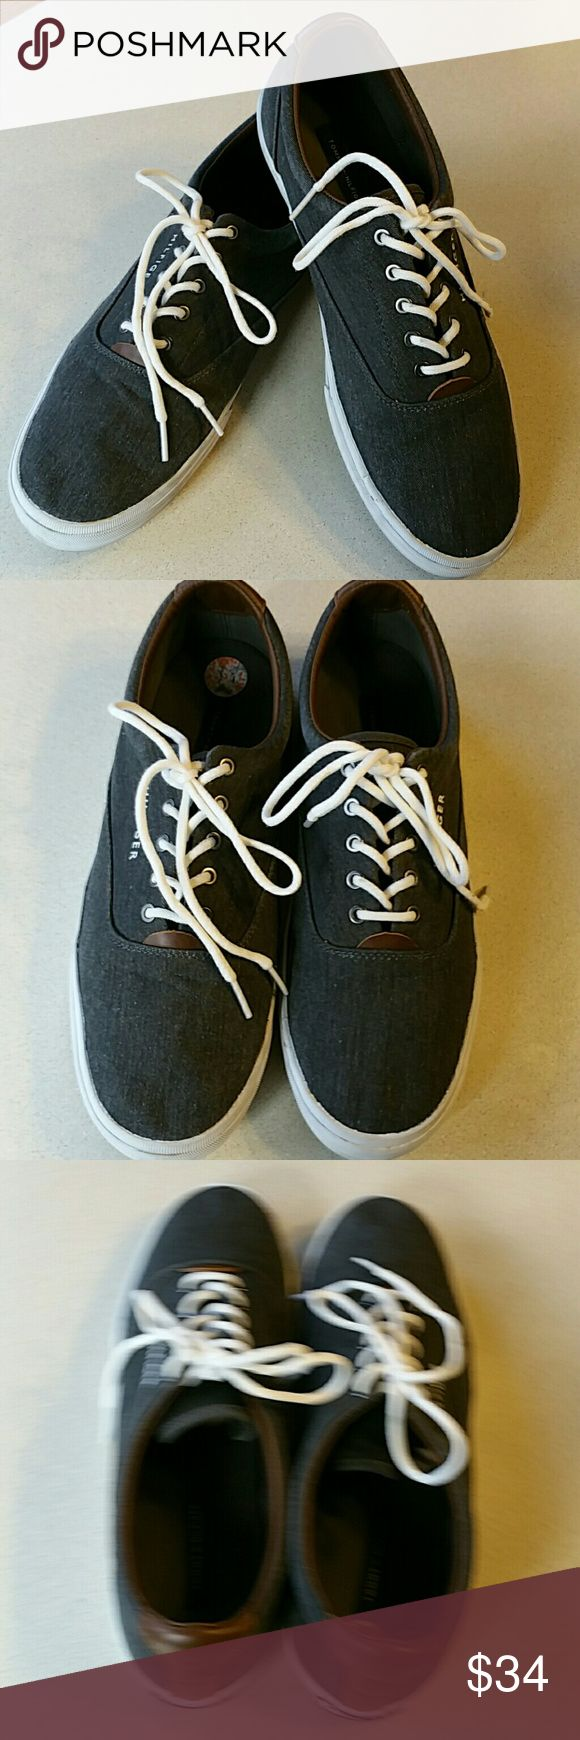 Men's T. Hilfiger Van style sneakers. Size 11 EUC Charcoal gray denim, with dk. Brown leather like trim, reinforced at heel. Barely worn, very good condition. Look and feel like Vans. Tommy Hilfiger brand Size 11. Tommy Hilfiger Shoes Loafers & Slip-Ons